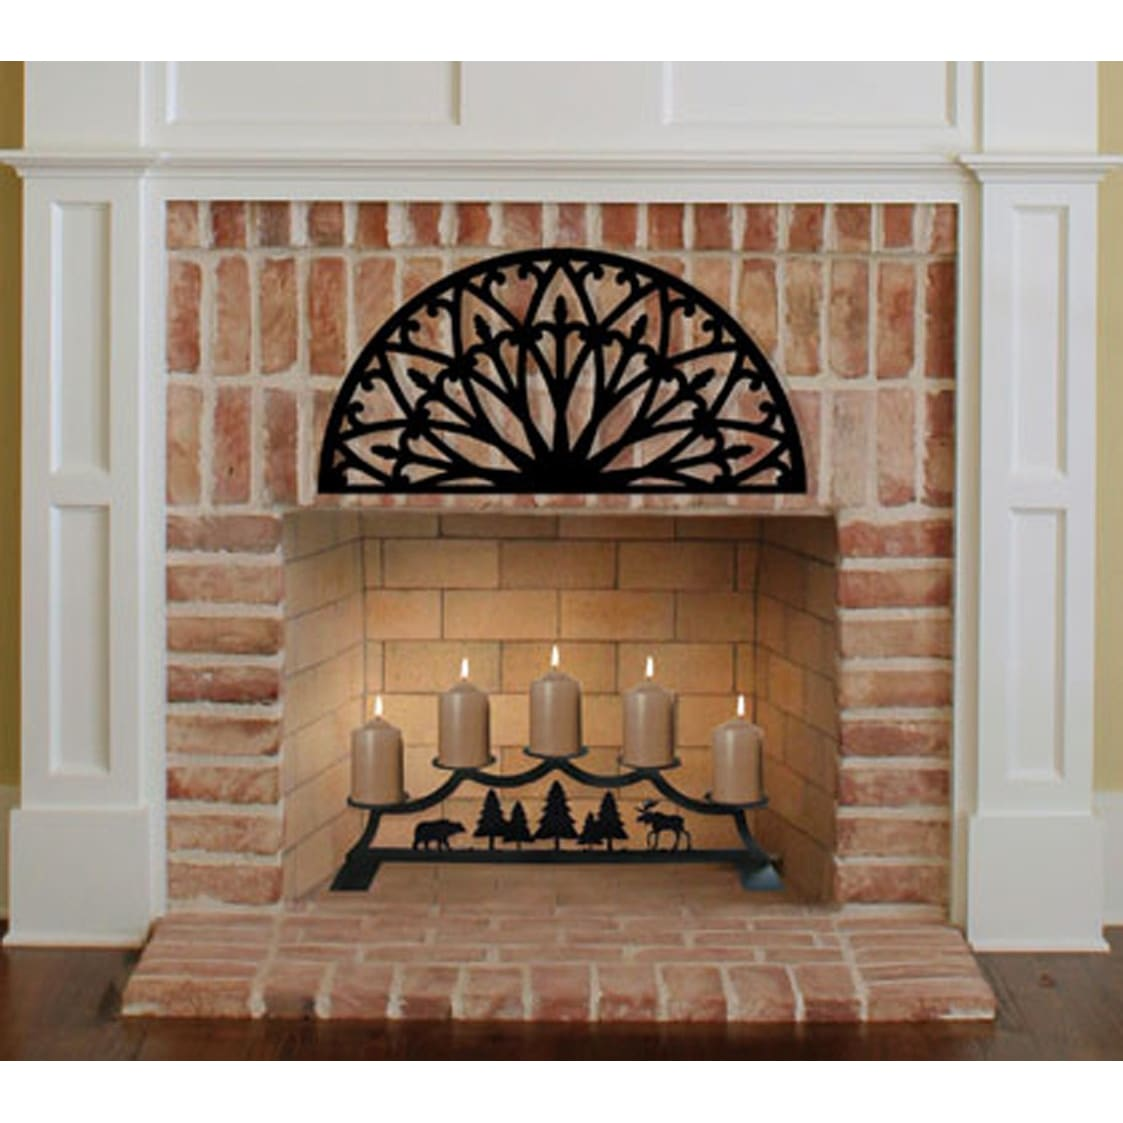 Wrought Iron Wall Decor Style 198 bedroom wall decor large ...